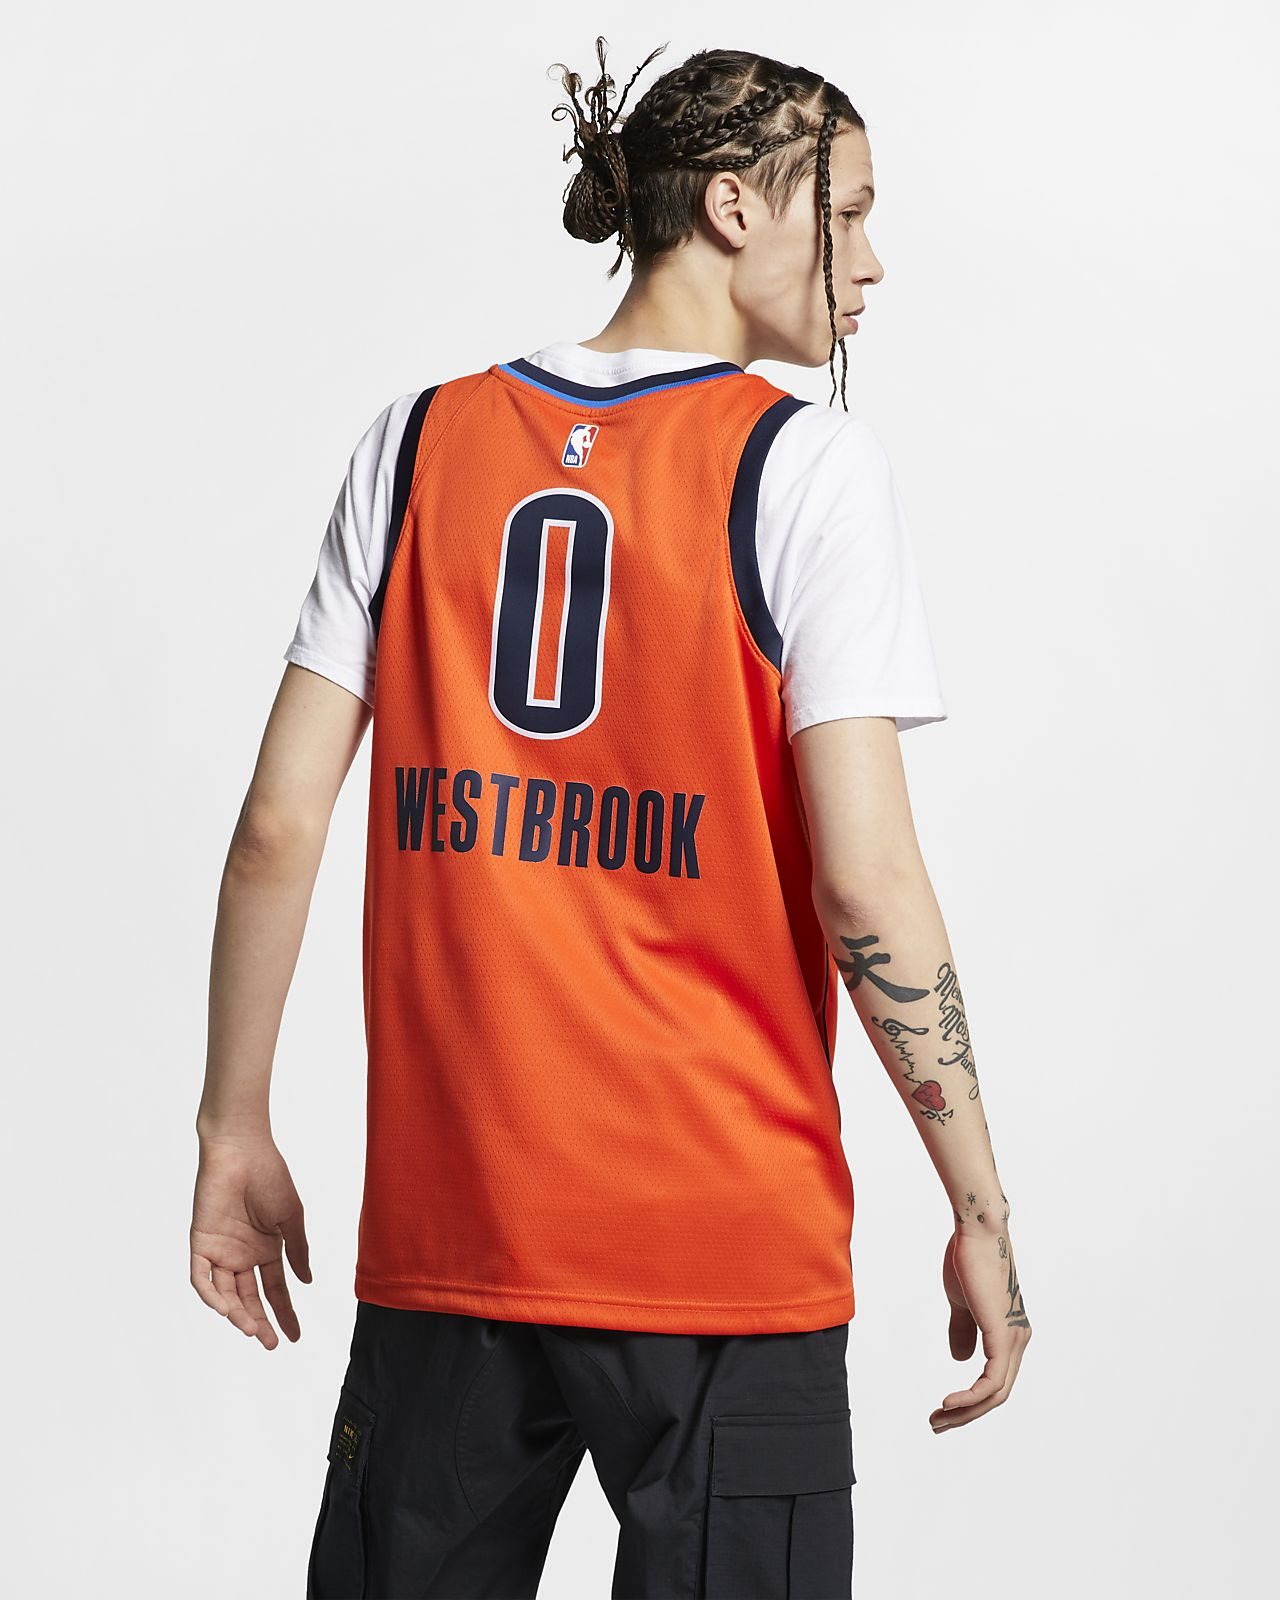 ad4804aa2 ... Russell Westbrook Earned City Edition Swingman (Oklahoma City Thunder)  Men s Nike NBA Connected Jersey